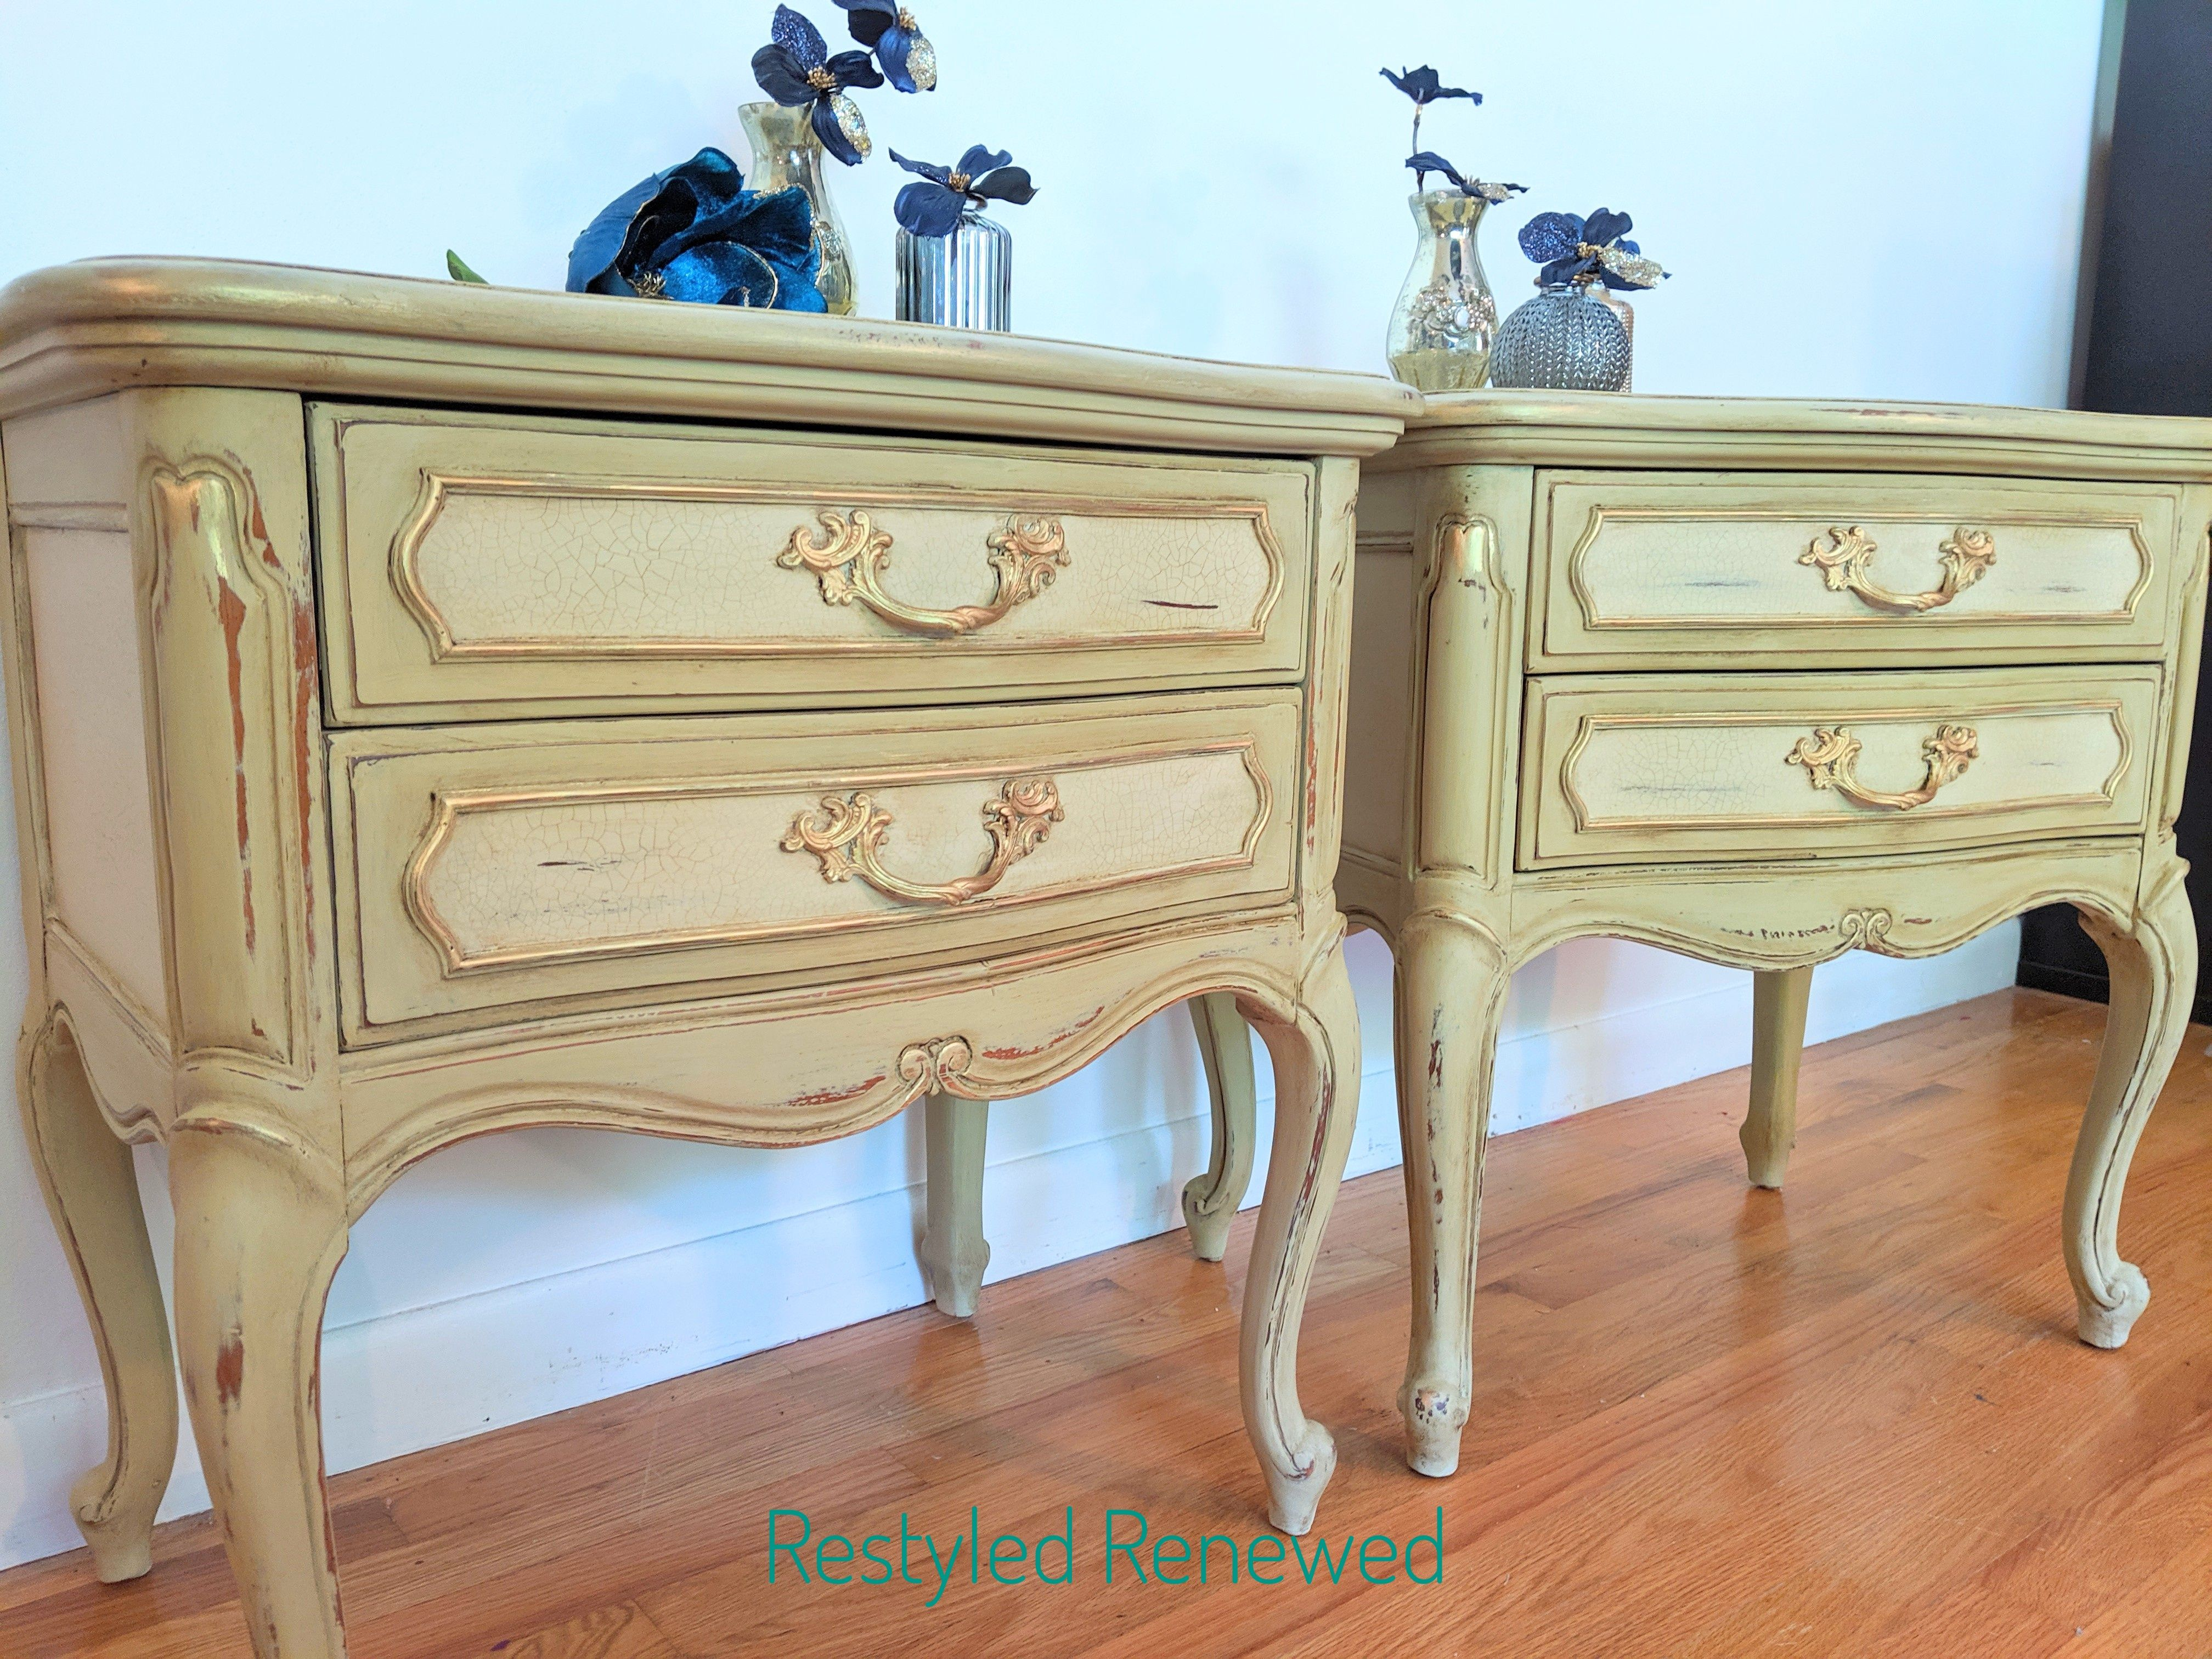 French Country Nightstands In 2020 Furniture Custom Furniture Vintage Furniture